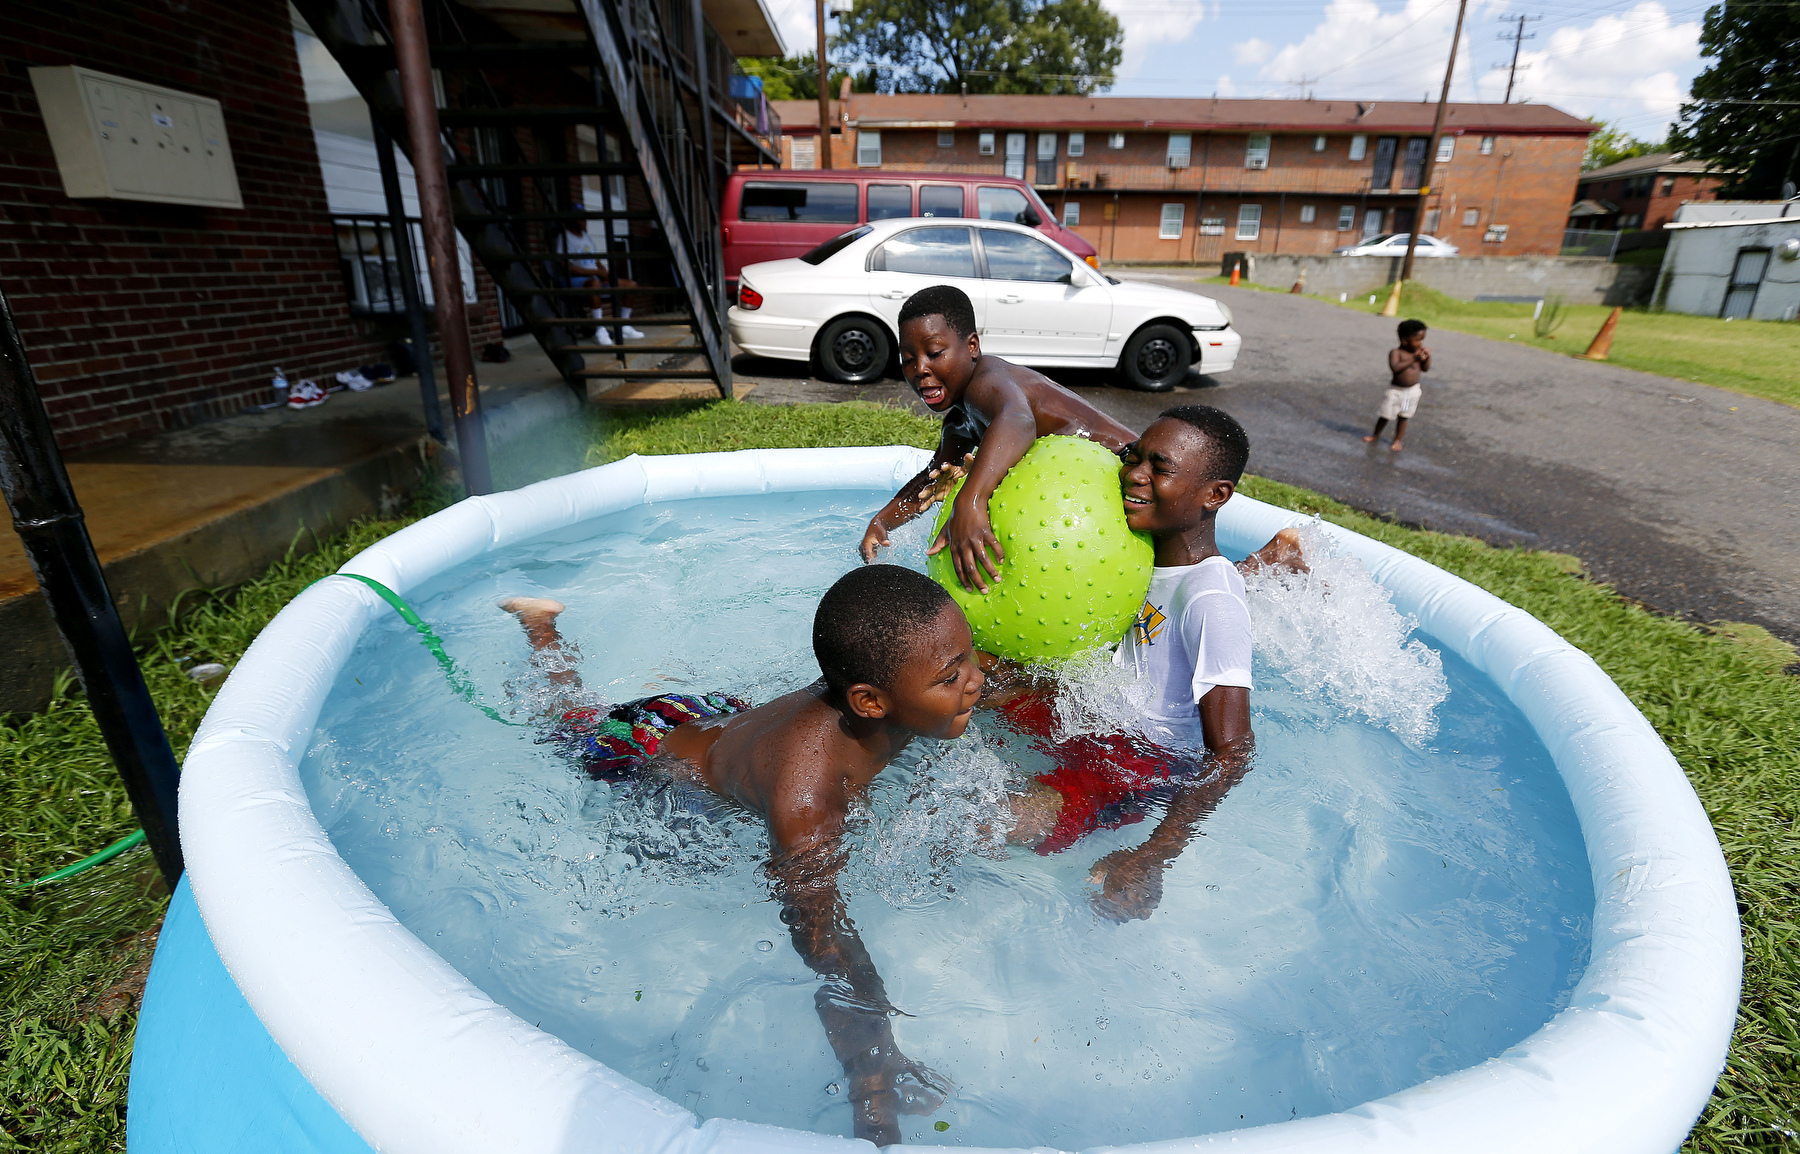 July 26, 2016 - Tarion Johnson, 8, (from left) DeAntonio Jackson, 9, and Royce Jackson, 10, goof off while staying cool in a small pool outside their apartment complex on Danny Thomas near Georgia. According to the National Weather Service the heat index topped 105 degrees. (Mike Brown/The Commercial Appeal)